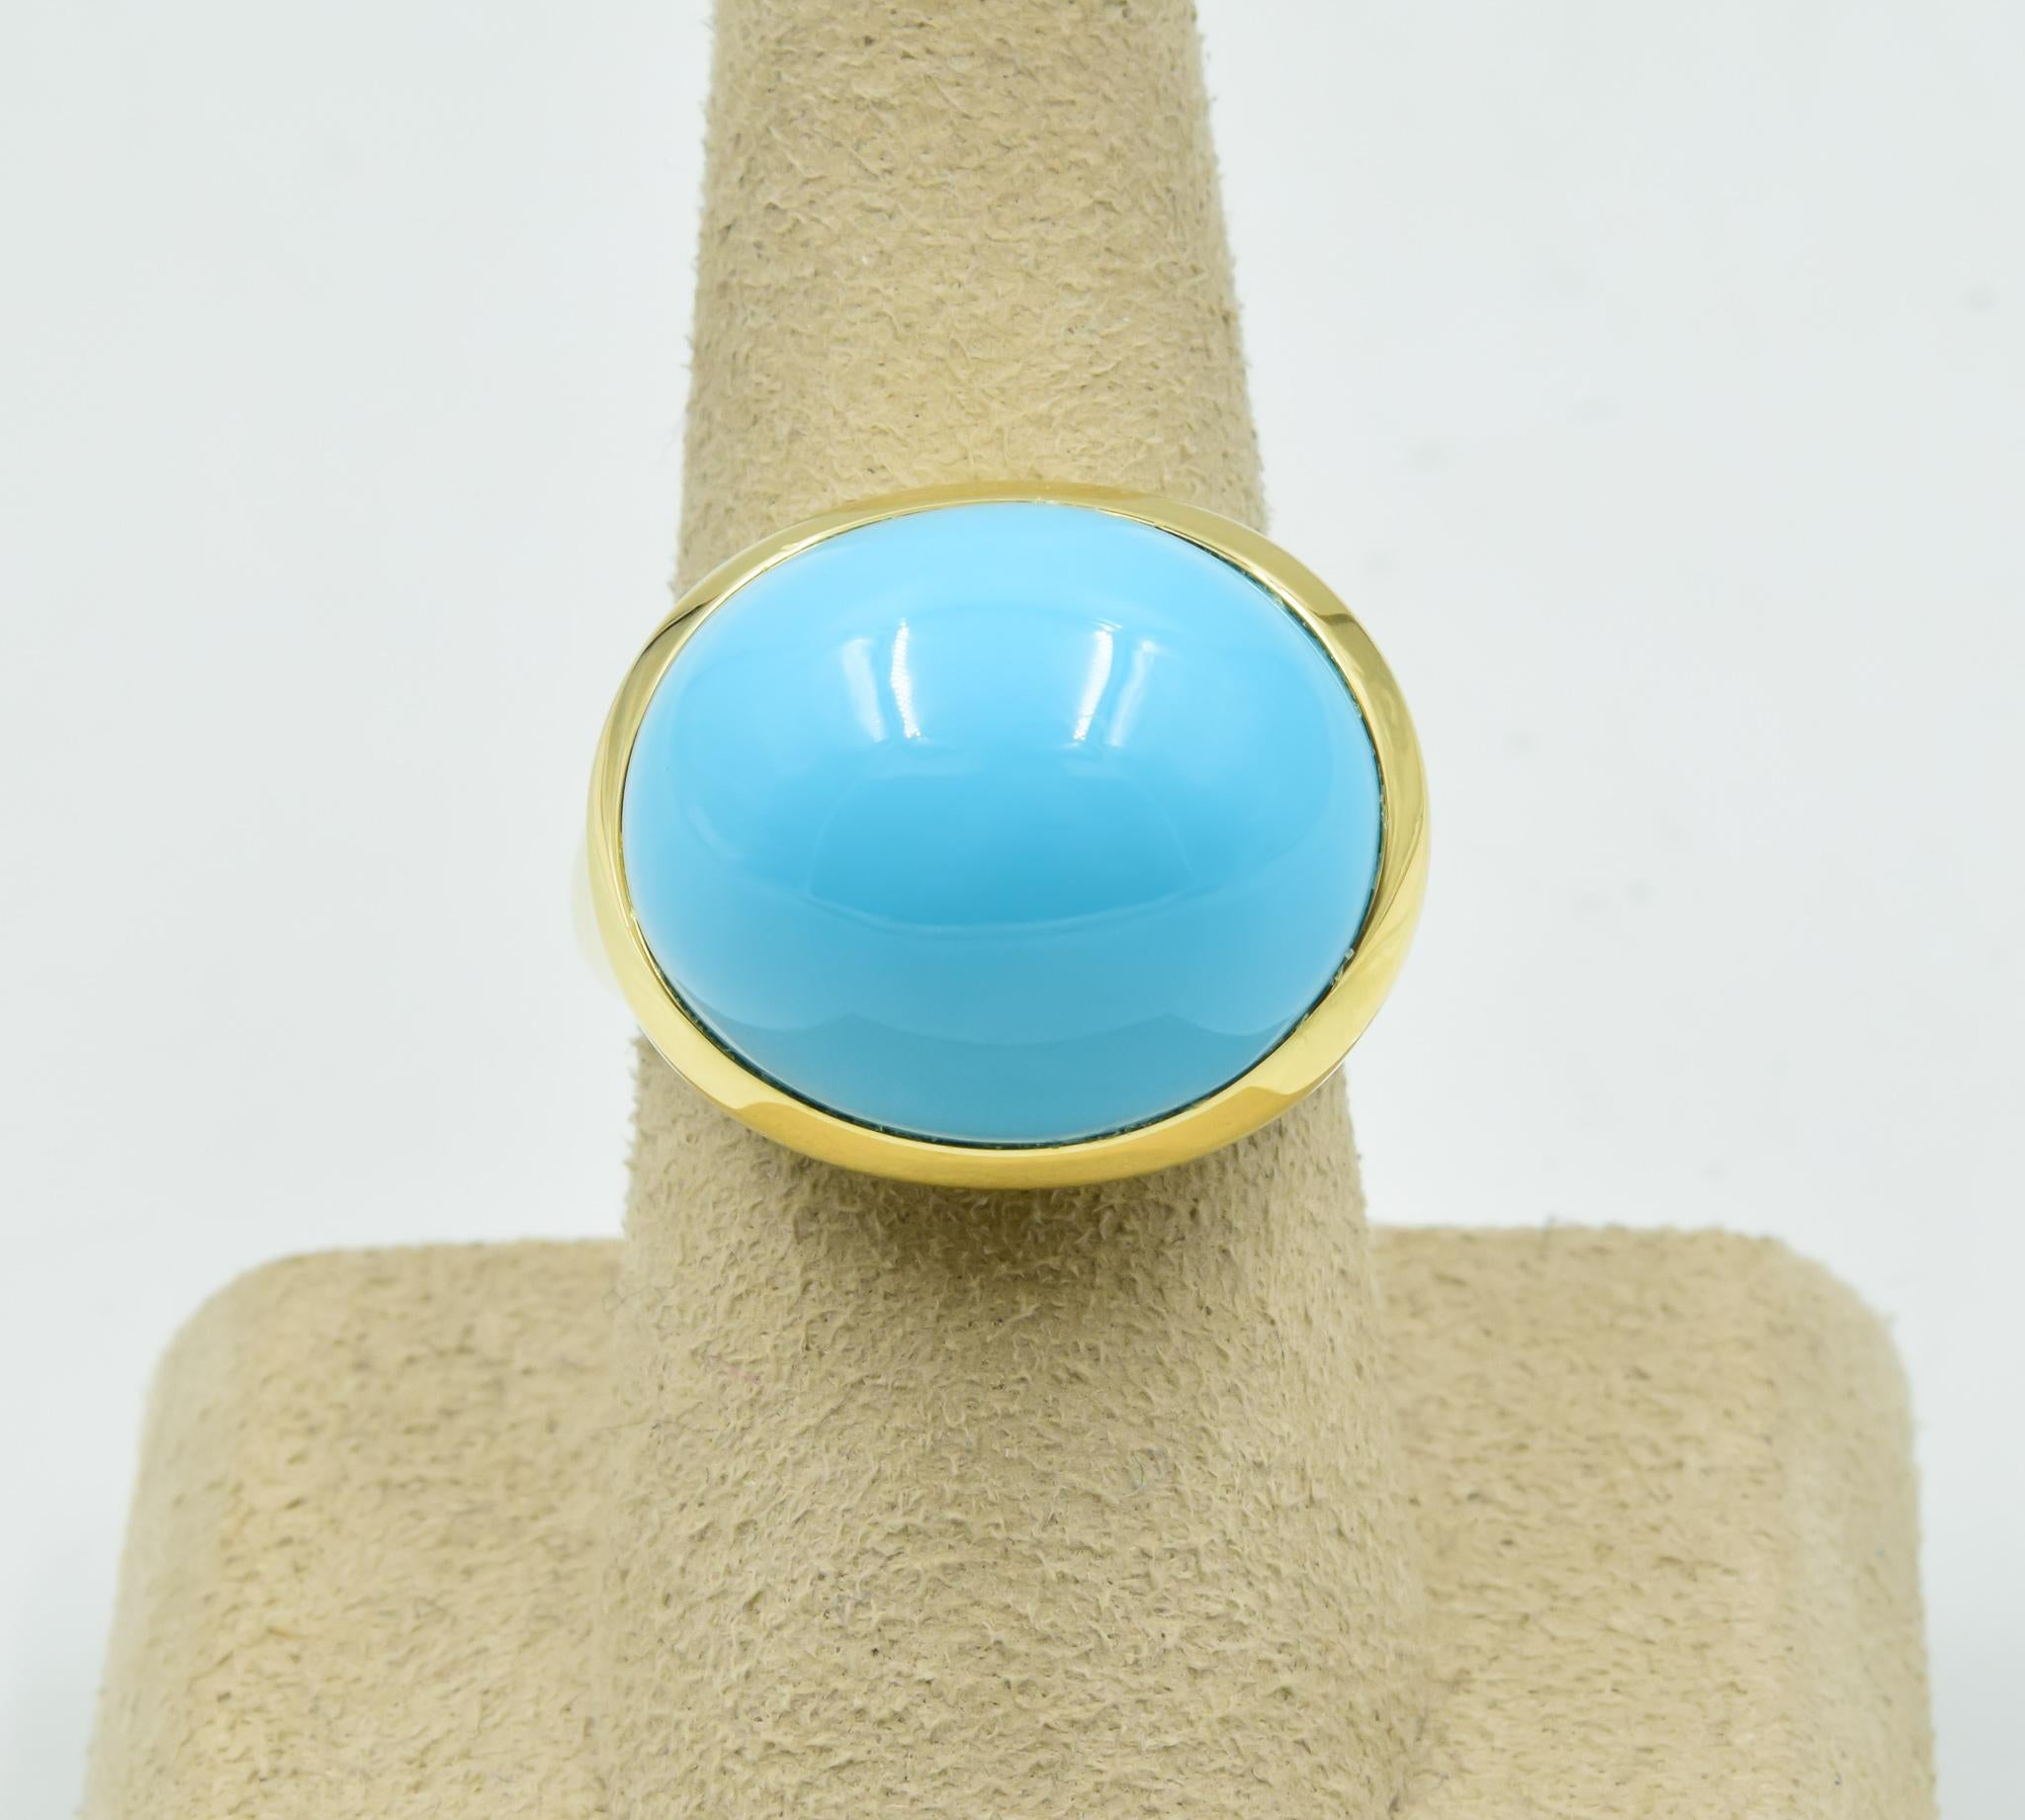 535901b53581 Tiffany and Co. Elsa Peretti Cabachon Robins Egg Ring in Turquoise 18 Karat  Gold at 1stdibs